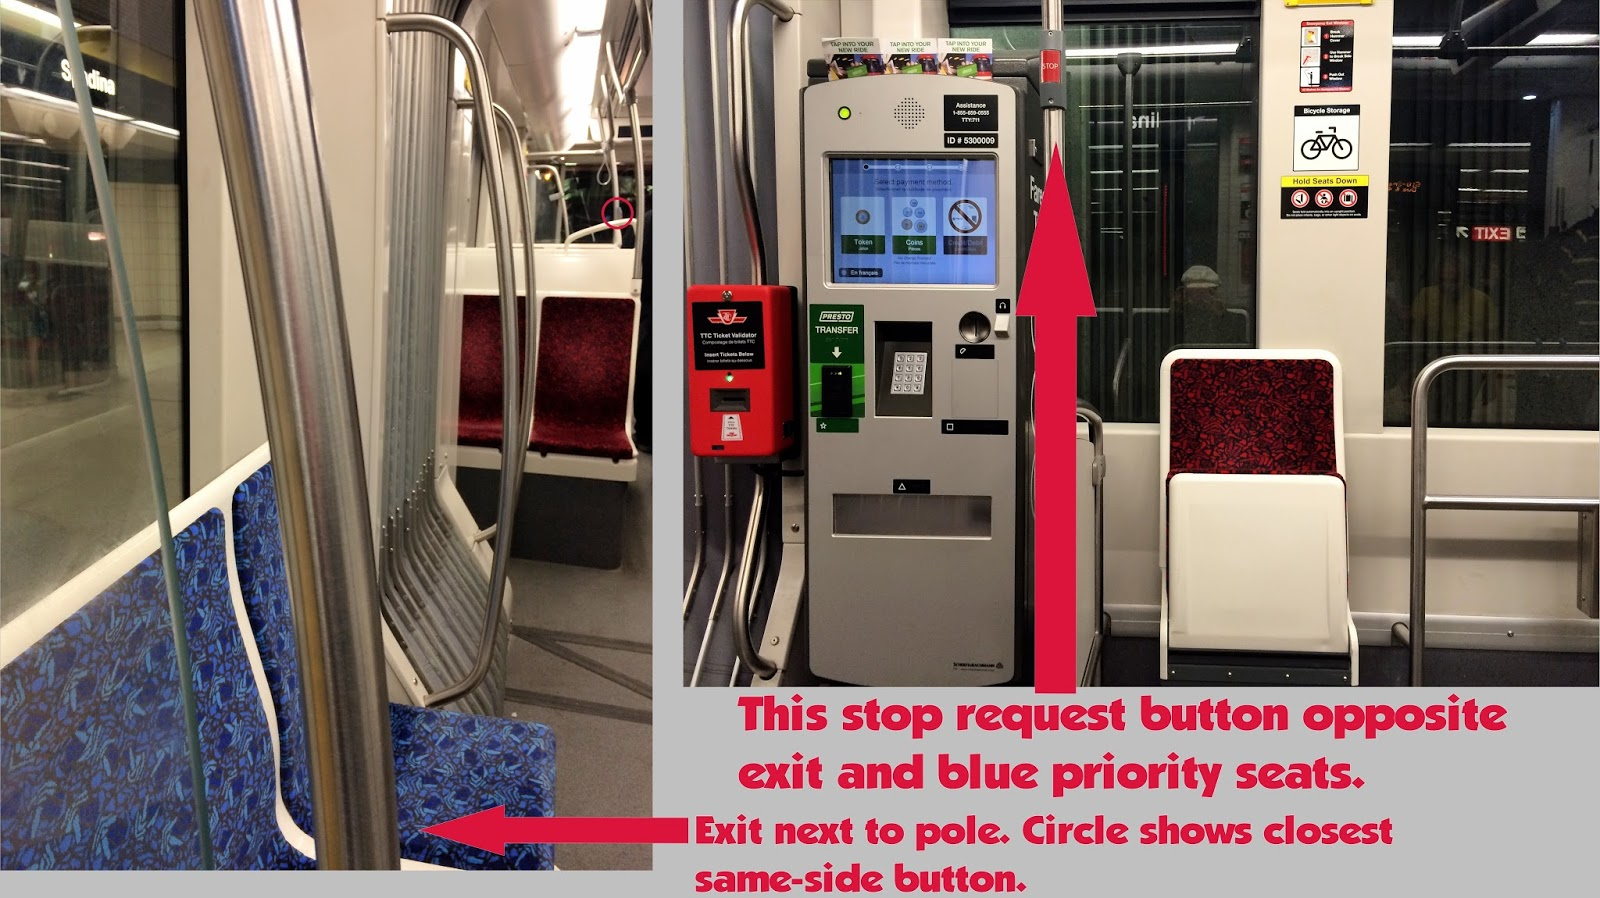 TTC New Streetcar Stop Request Button Locations